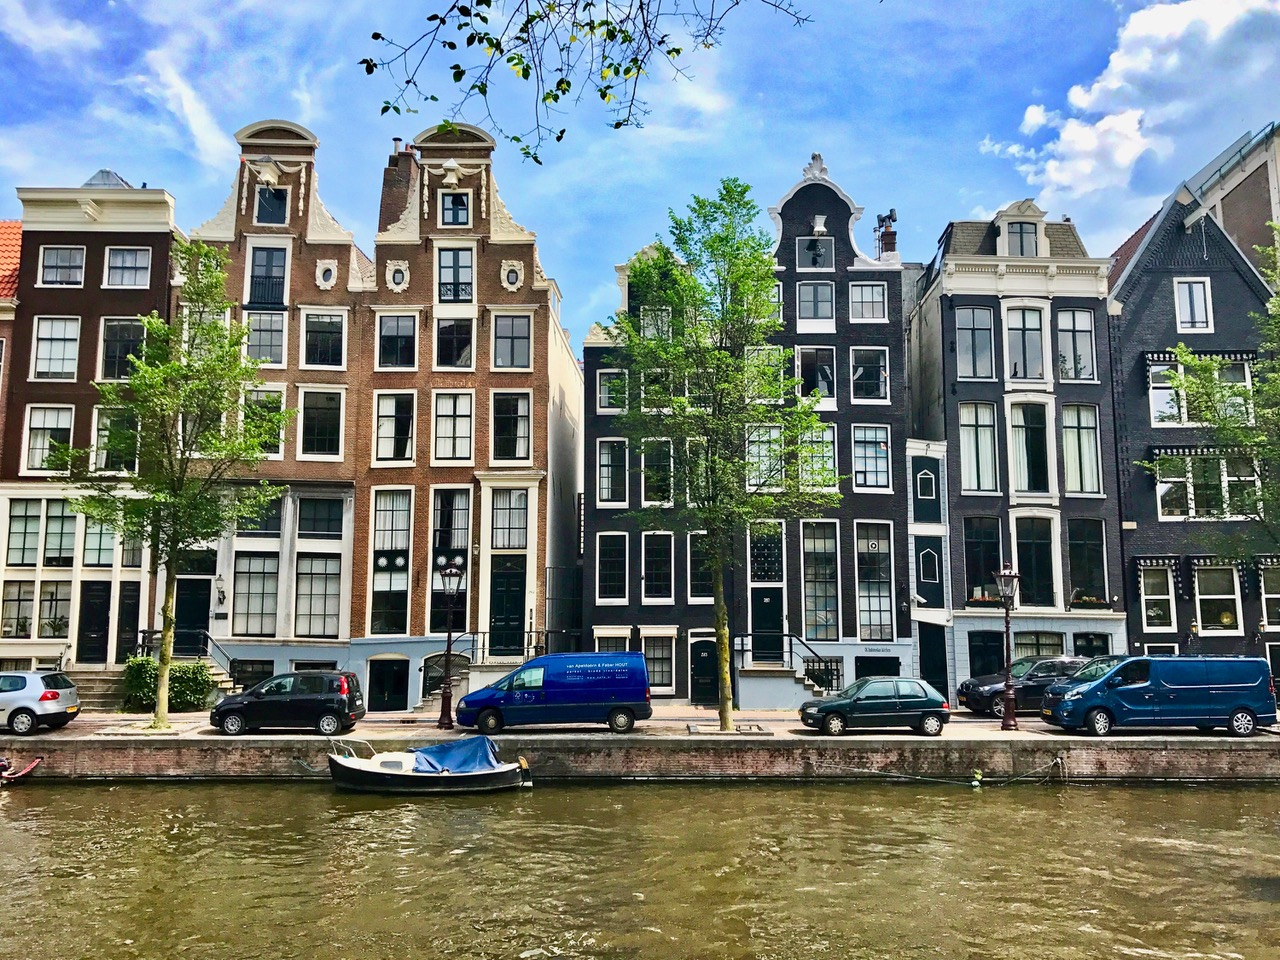 Amsterdam canals, Herengracht, The Netherlands